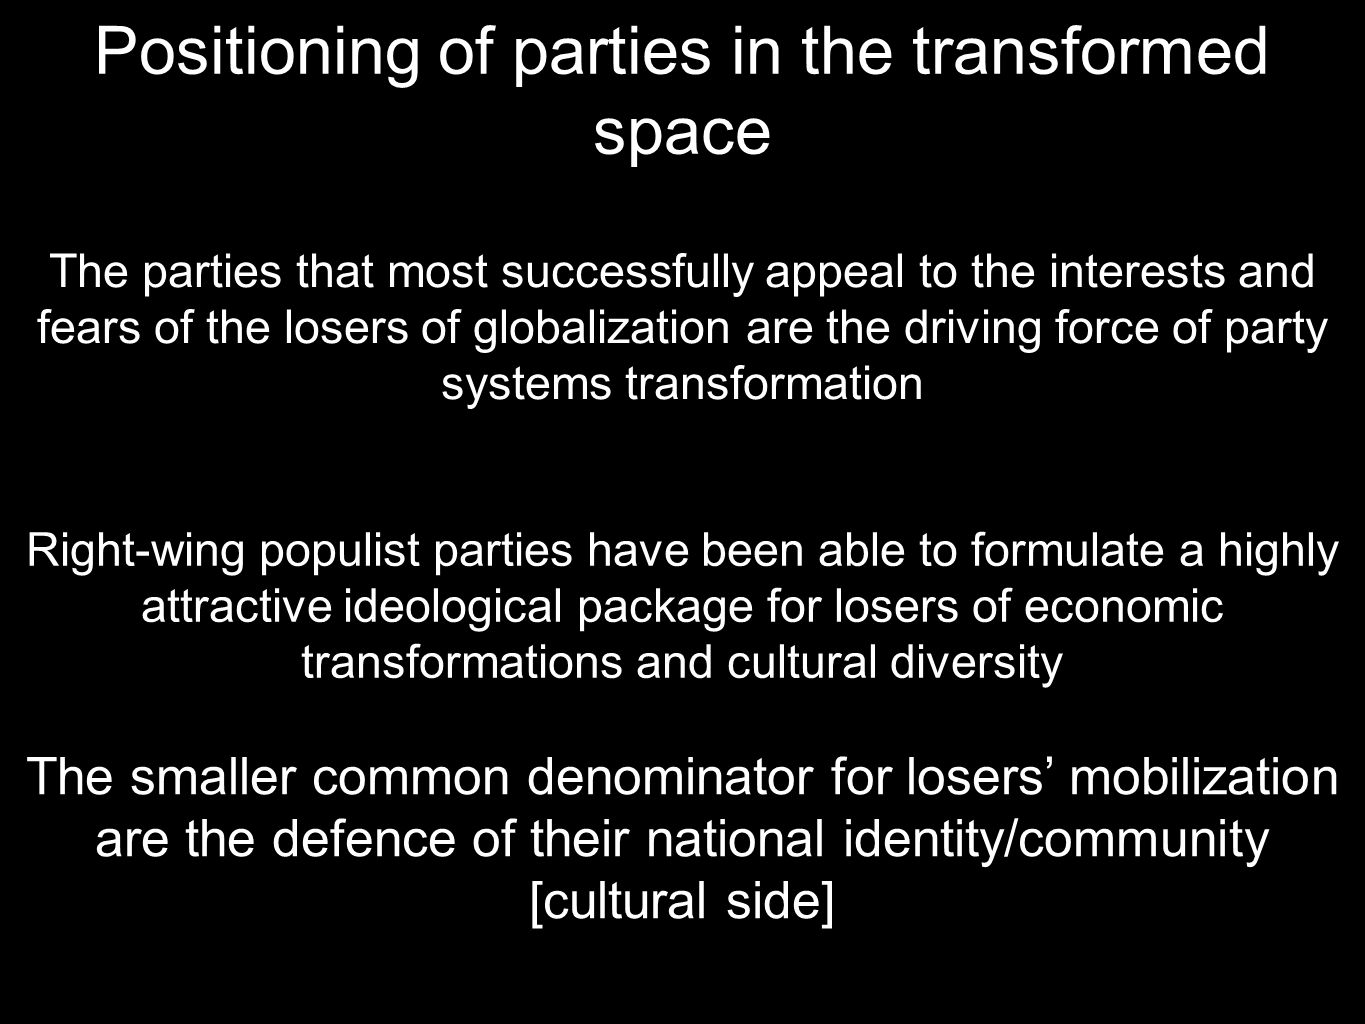 Positioning of parties in the transformed space